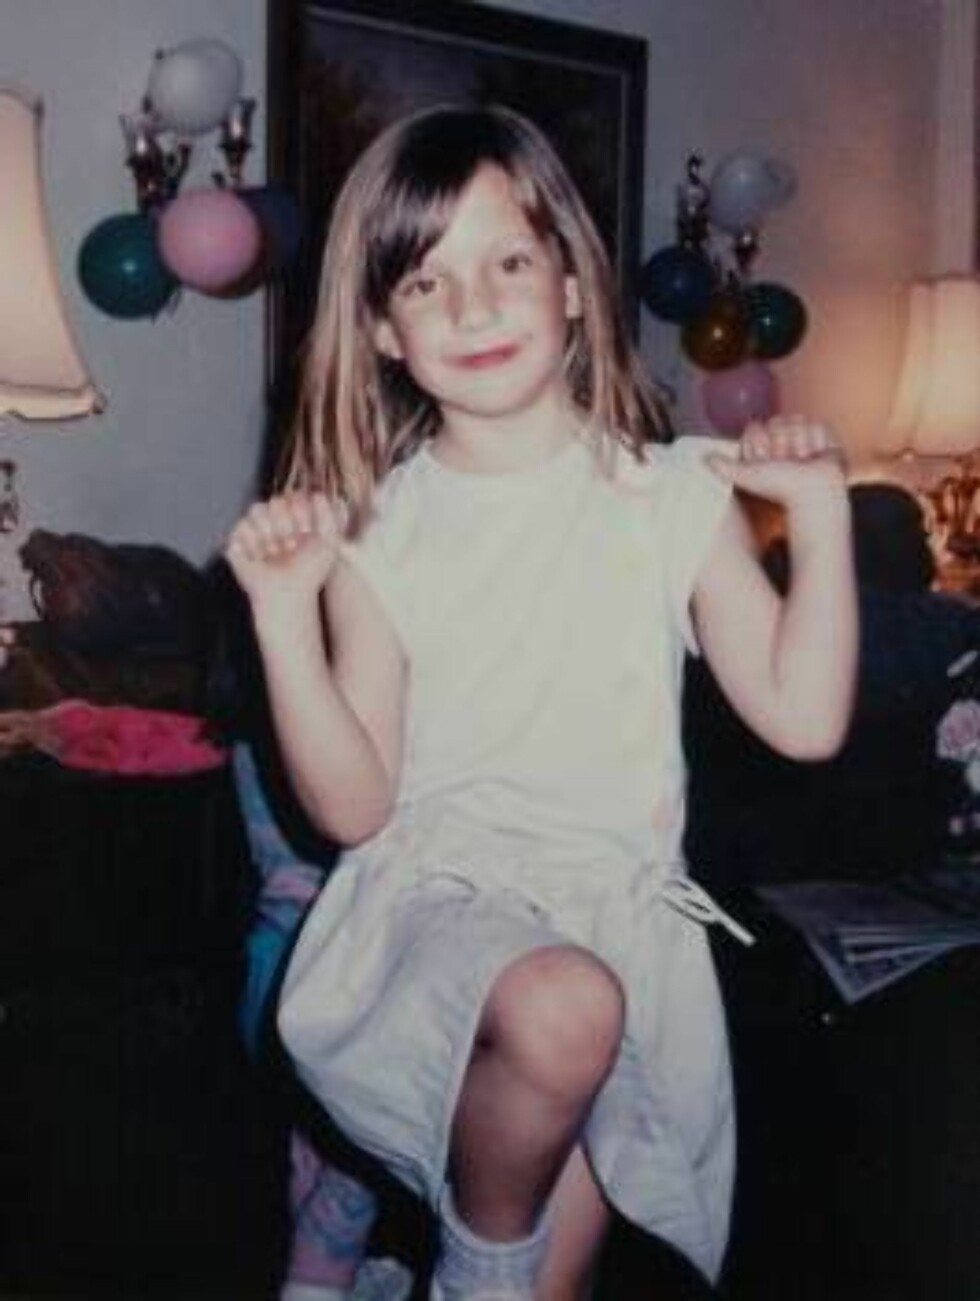 FILE: Hudson family album. Collect picture showing Kate Hudson aged 6 years in Portland Oregon  Photo: DR Code: 3011  COPYRIGHT STELLA PICTURES Foto: Stella Pictures